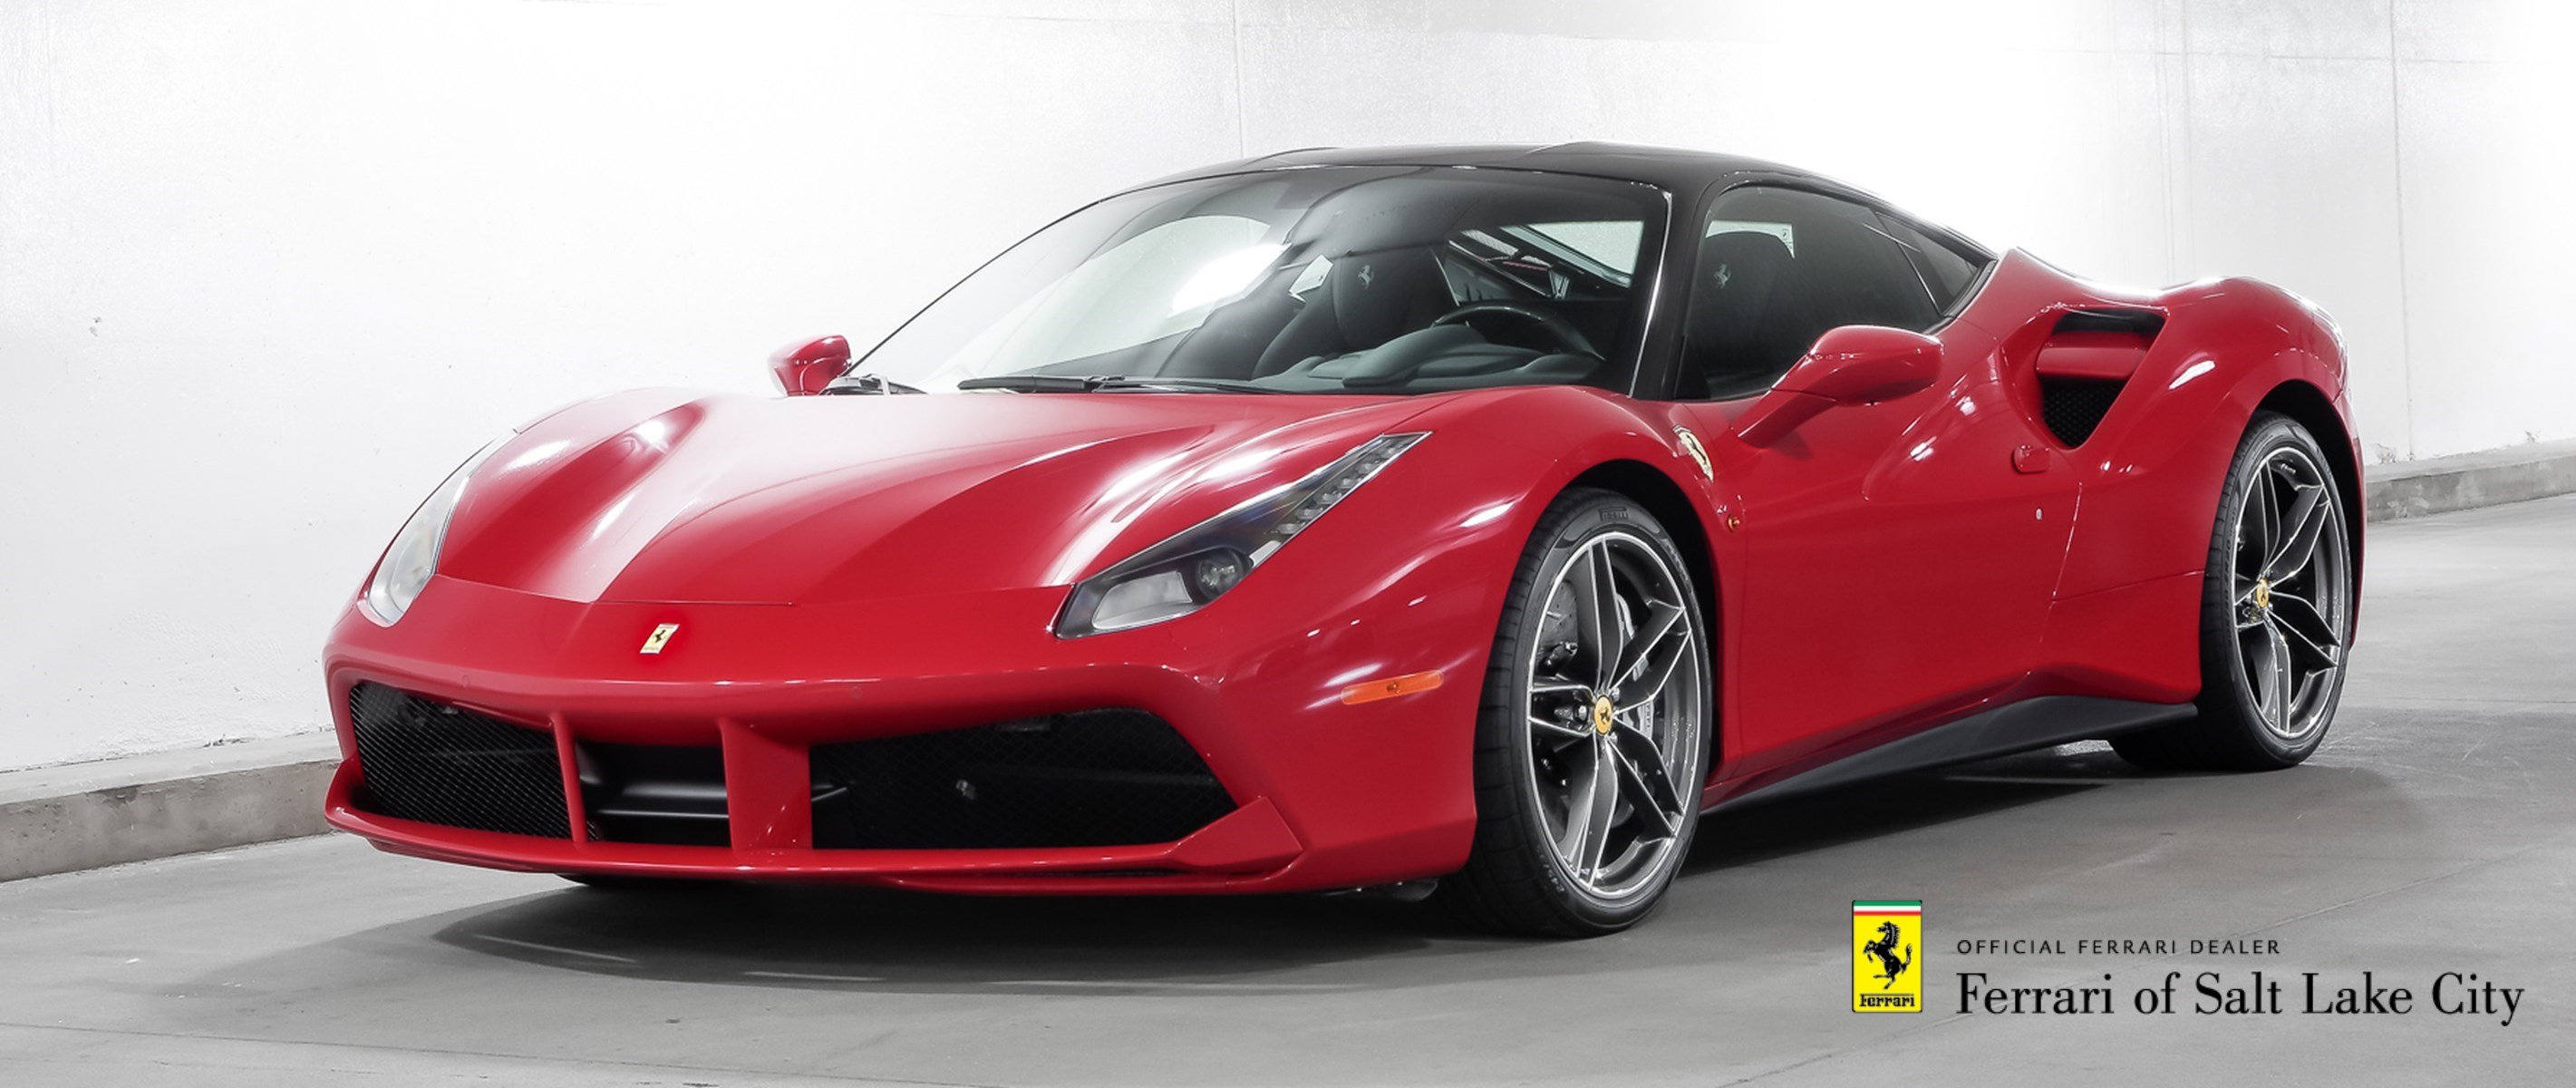 lease for near ferrari ct l deals htm c stock sale greenwich used main ff